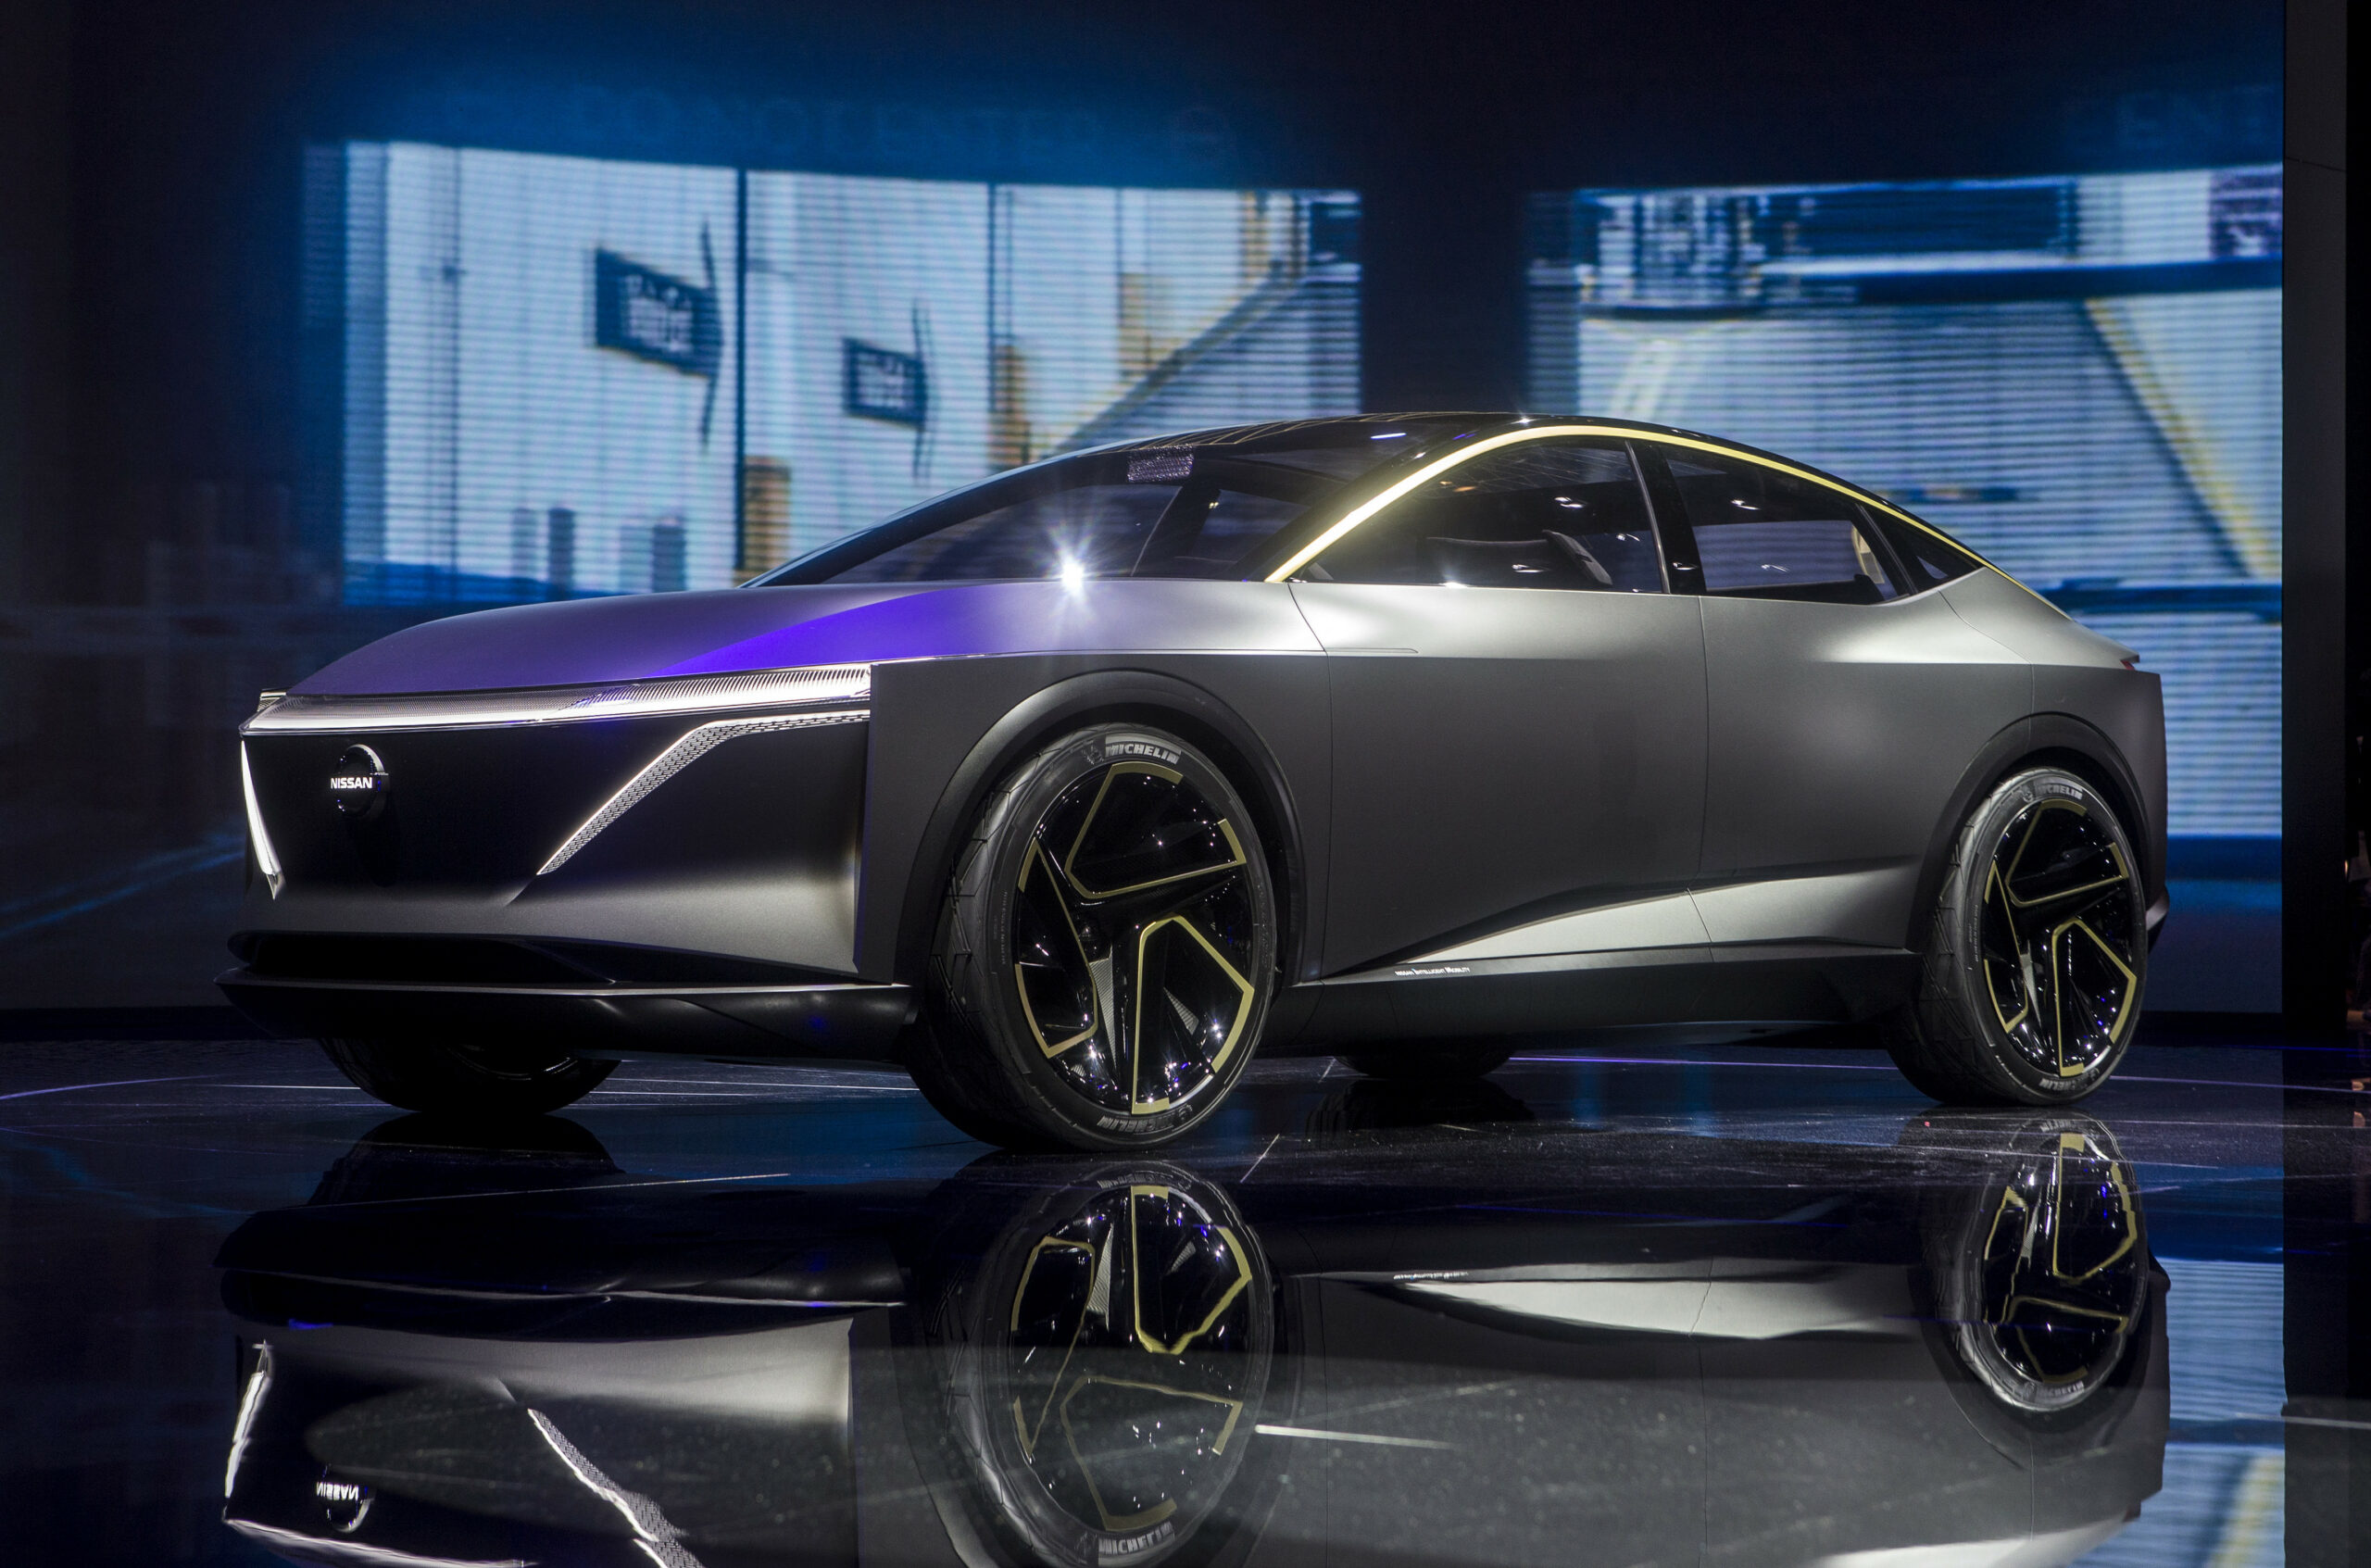 Redesign and Concept Nissan Concept 2022 Price In India